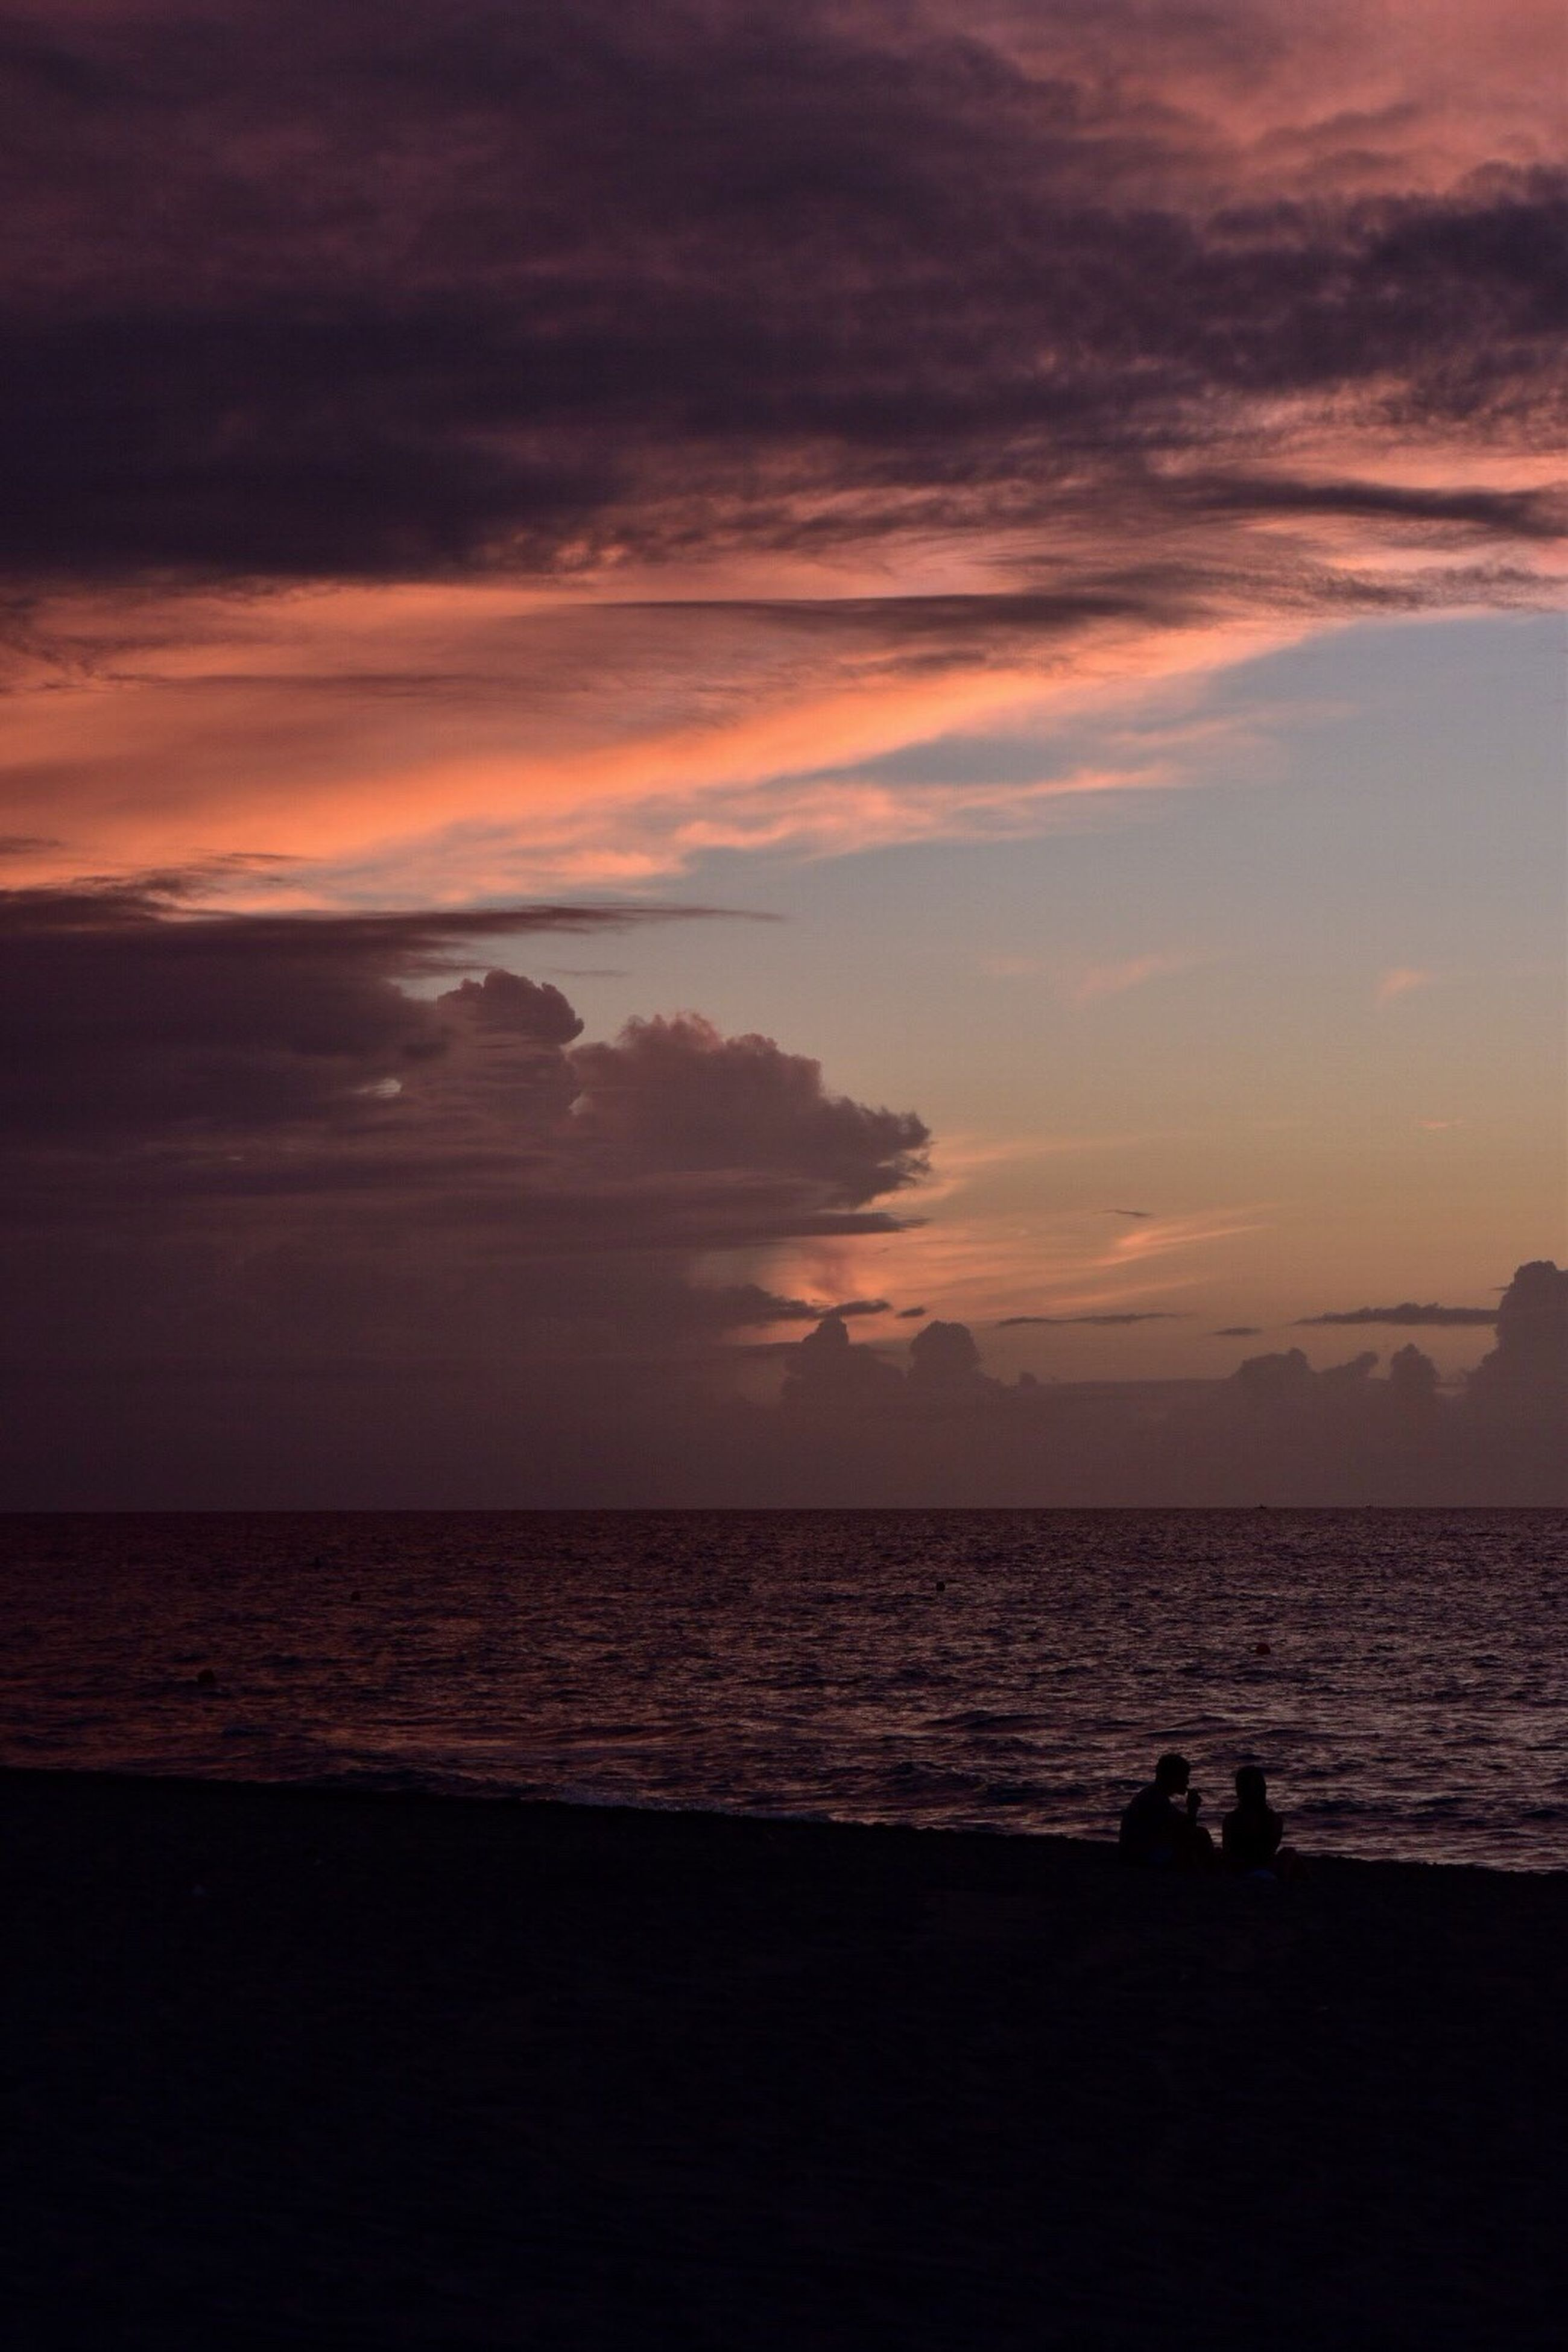 sunset, sea, silhouette, beach, nature, beauty in nature, sky, scenics, tranquil scene, tranquility, horizon over water, water, outdoors, people